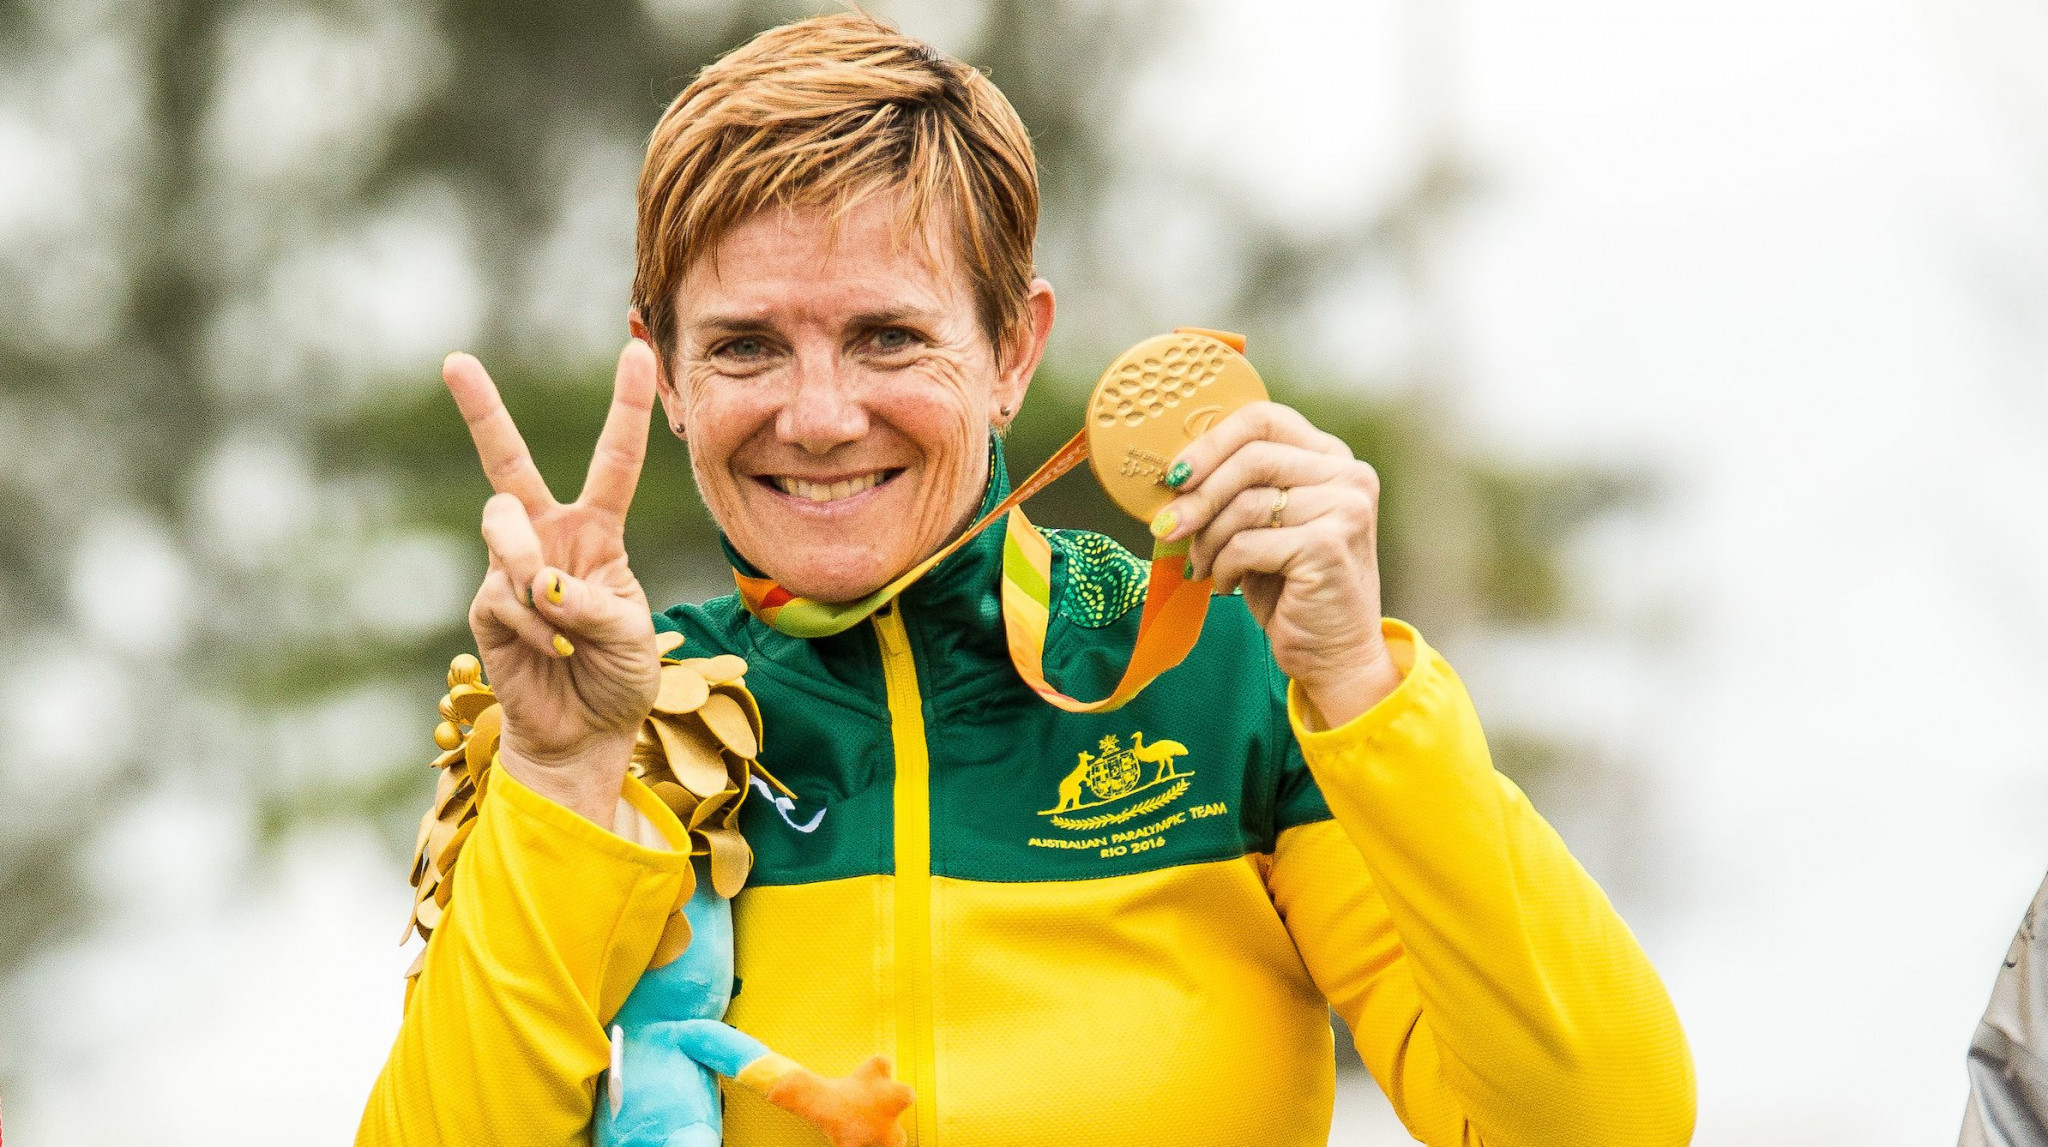 Carol Cooke, above, and fellow Rio 2016 gold medallist David Nicholas completed a time trial and road race double ©Australia Paralympic Committee